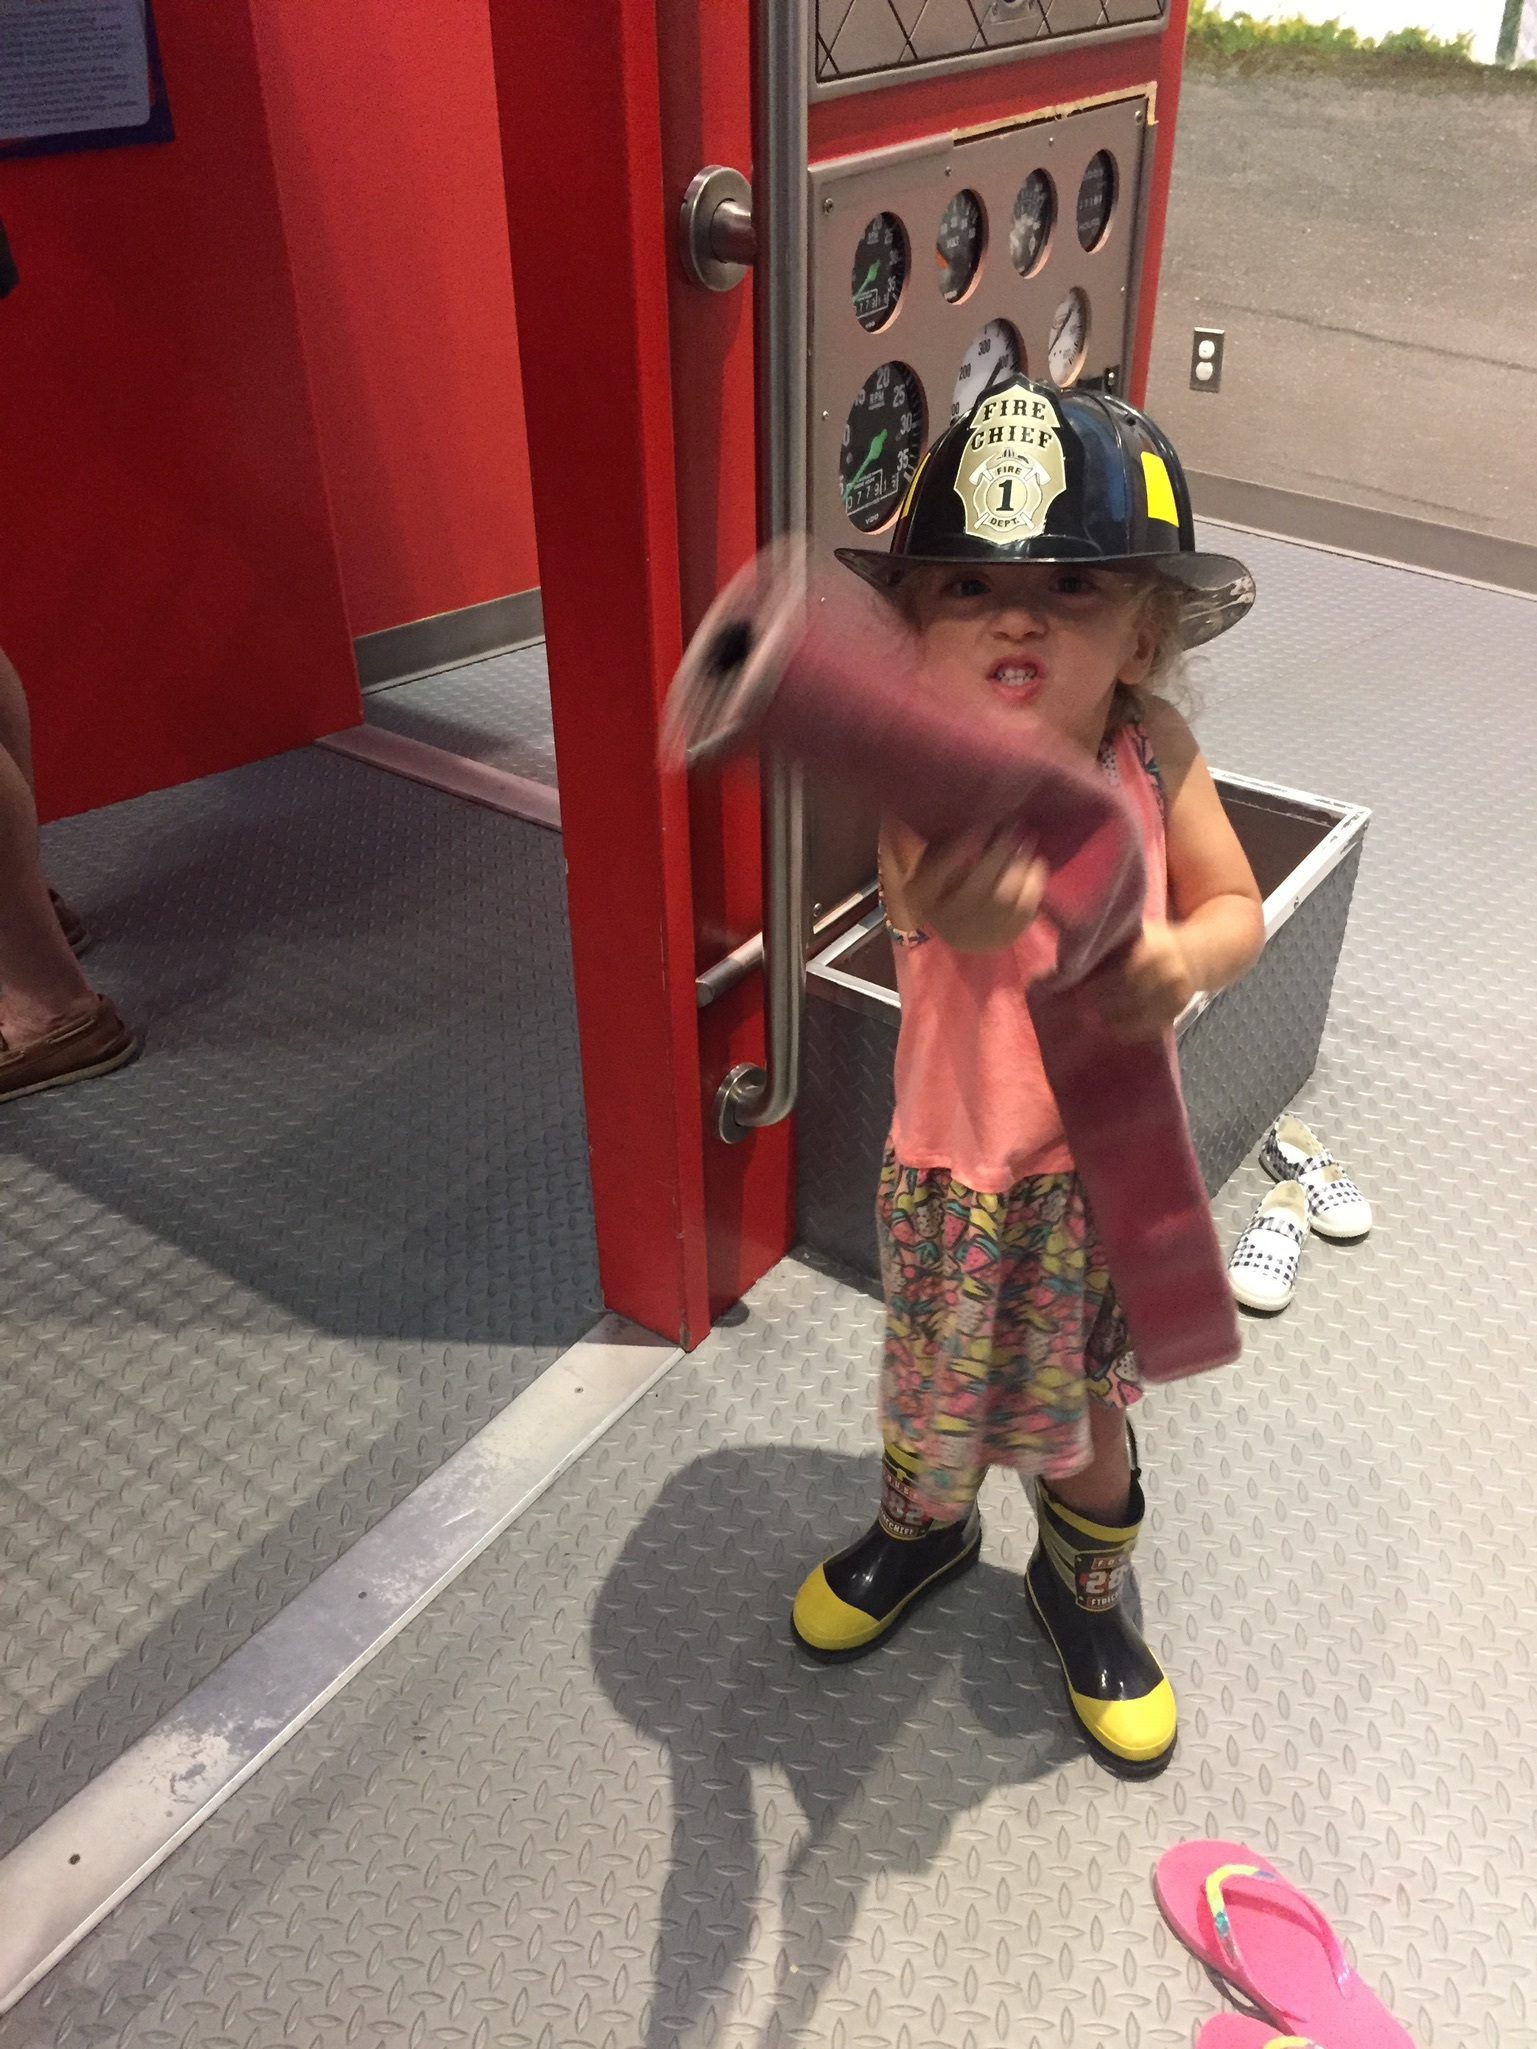 Our third day, we went to a Children's Musuem, which had a few fun areas to play, and interact. Of course, Lucie loved the firefighter station... and the...